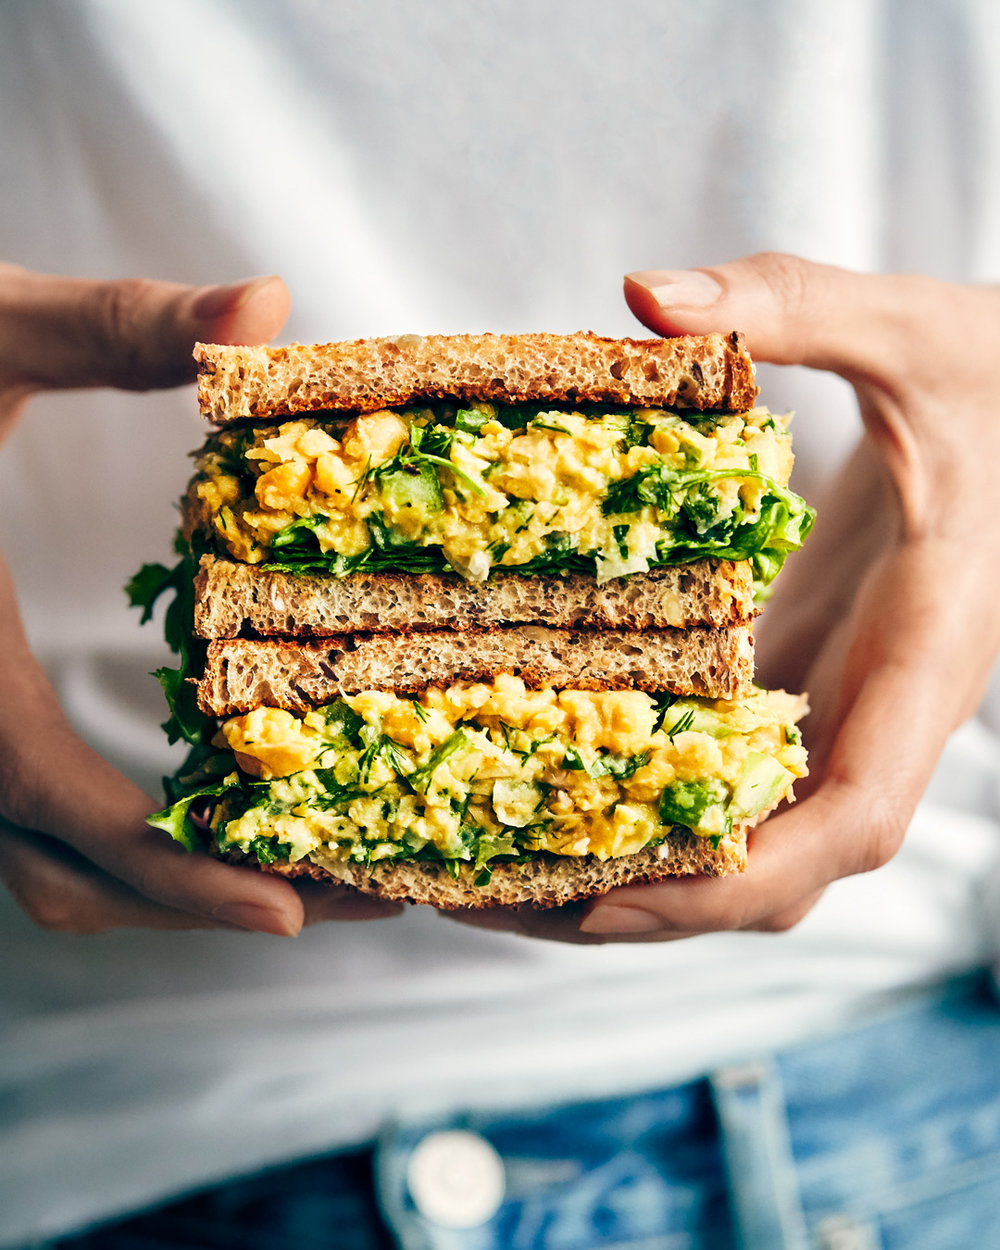 Evergreen Kitchen - Chickpea Sandwich.jpg